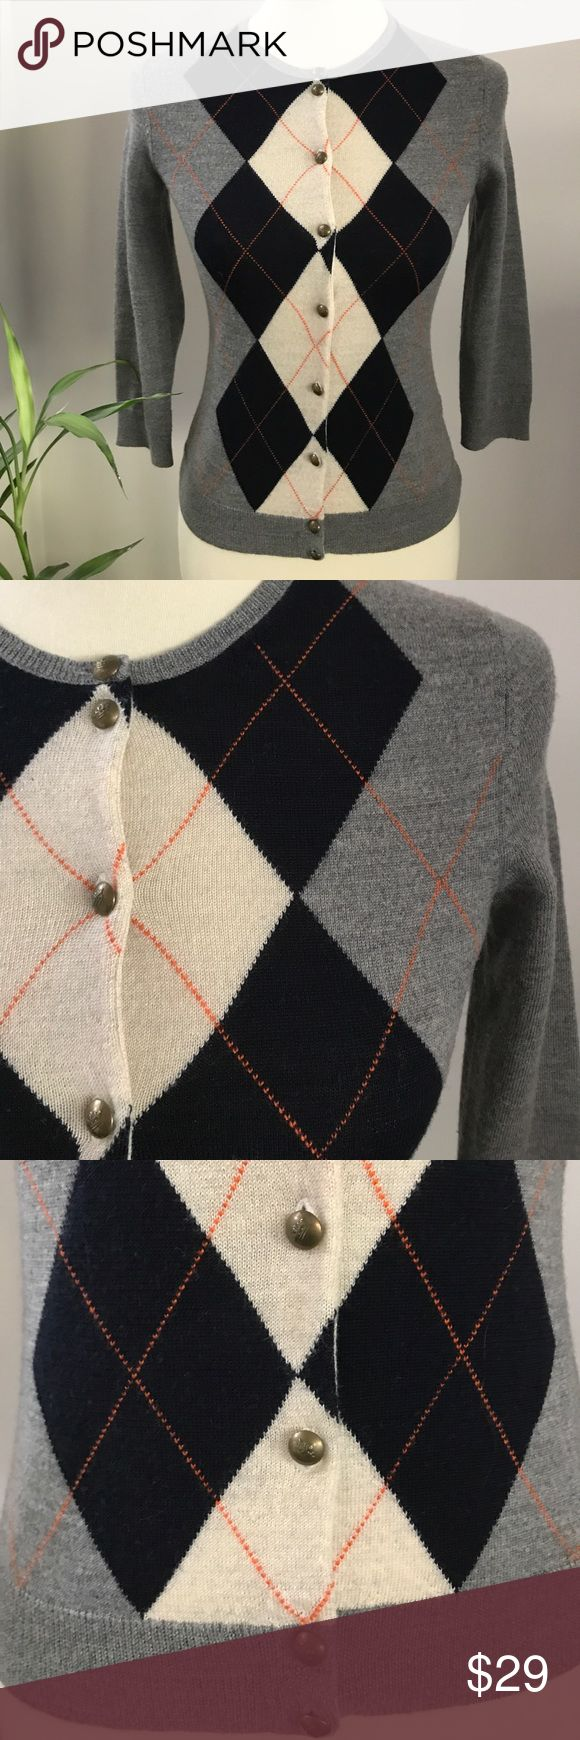 J. Crew Wool Button Down Argyle Sweater An easy wear everywhere cardigan made from lightweight 100% Merino Wool Argyle with a sightly shorter fit. Signature diamond pattern with 3/4 sleeves. Small round gold metal button down closure. Ribbed trim neckline.  Black, grey, cream with orange ticker stitch accent. In excellent gently used condition. Dry Clean J. Crew Sweaters Cardigans